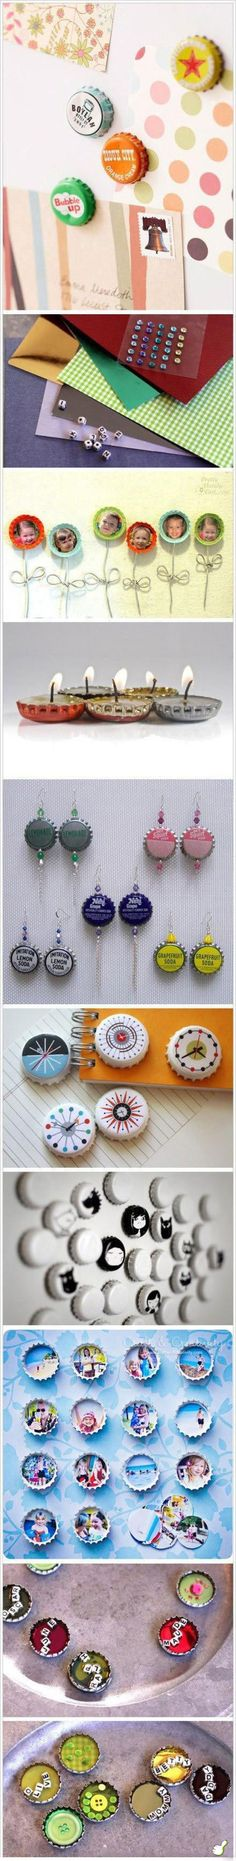 cool ideas on ways to use your bottle tops